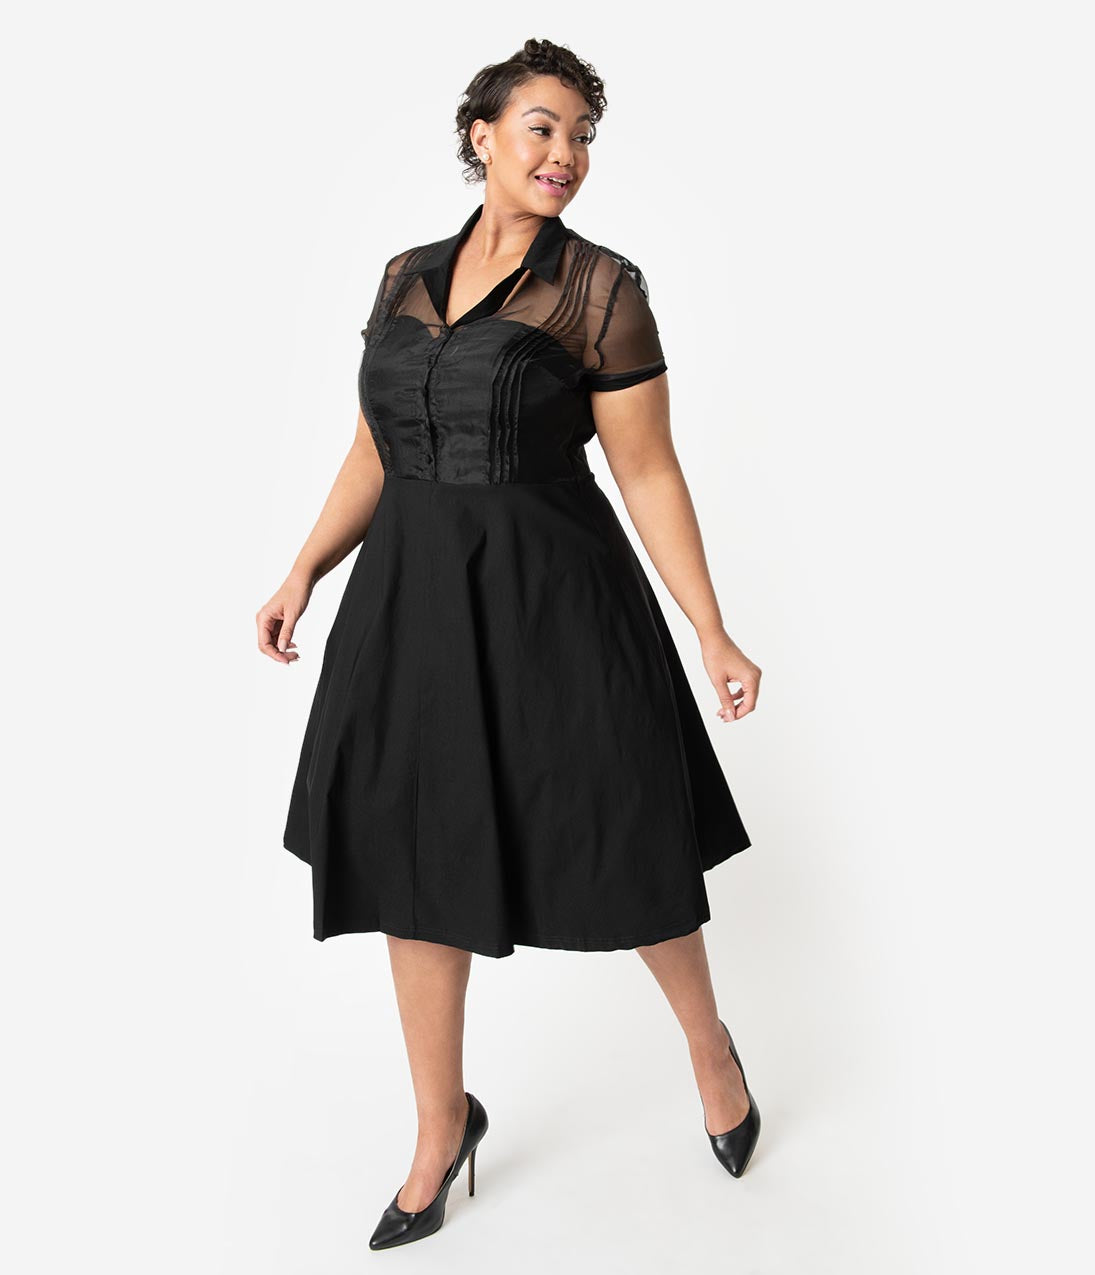 1950s Dresses, 50s Dresses | 1950s Style Dresses Unique Vintage Plus Size 1950S Black Stretch Sheer Button Roz Swing Dress $63.00 AT vintagedancer.com